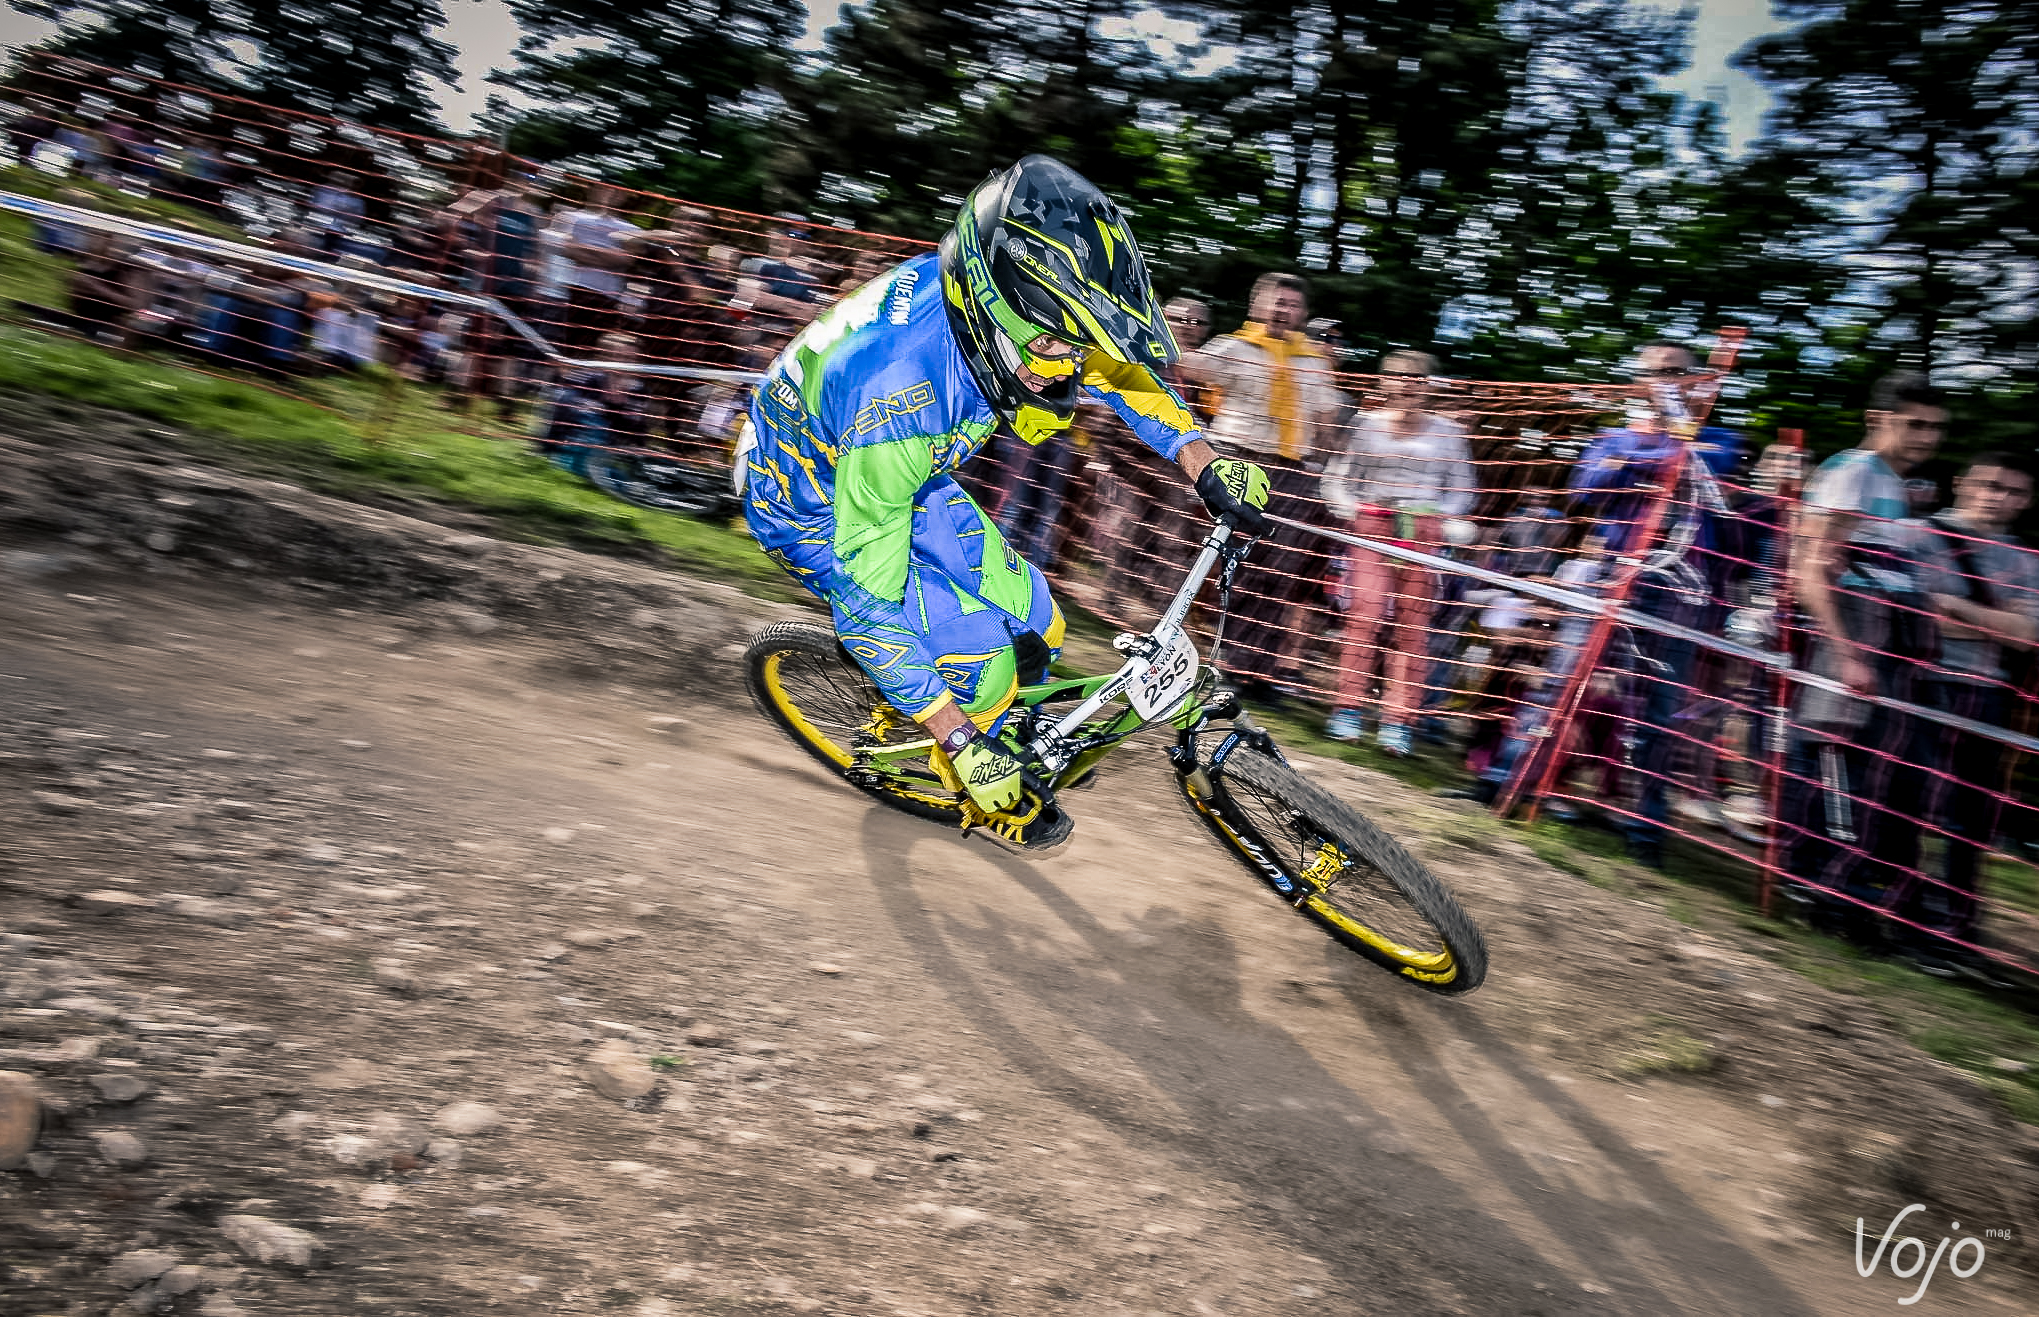 Coupe-France-DH_Lyon_LaSarra-copyright-Romain-Laurent-VojoMag-40